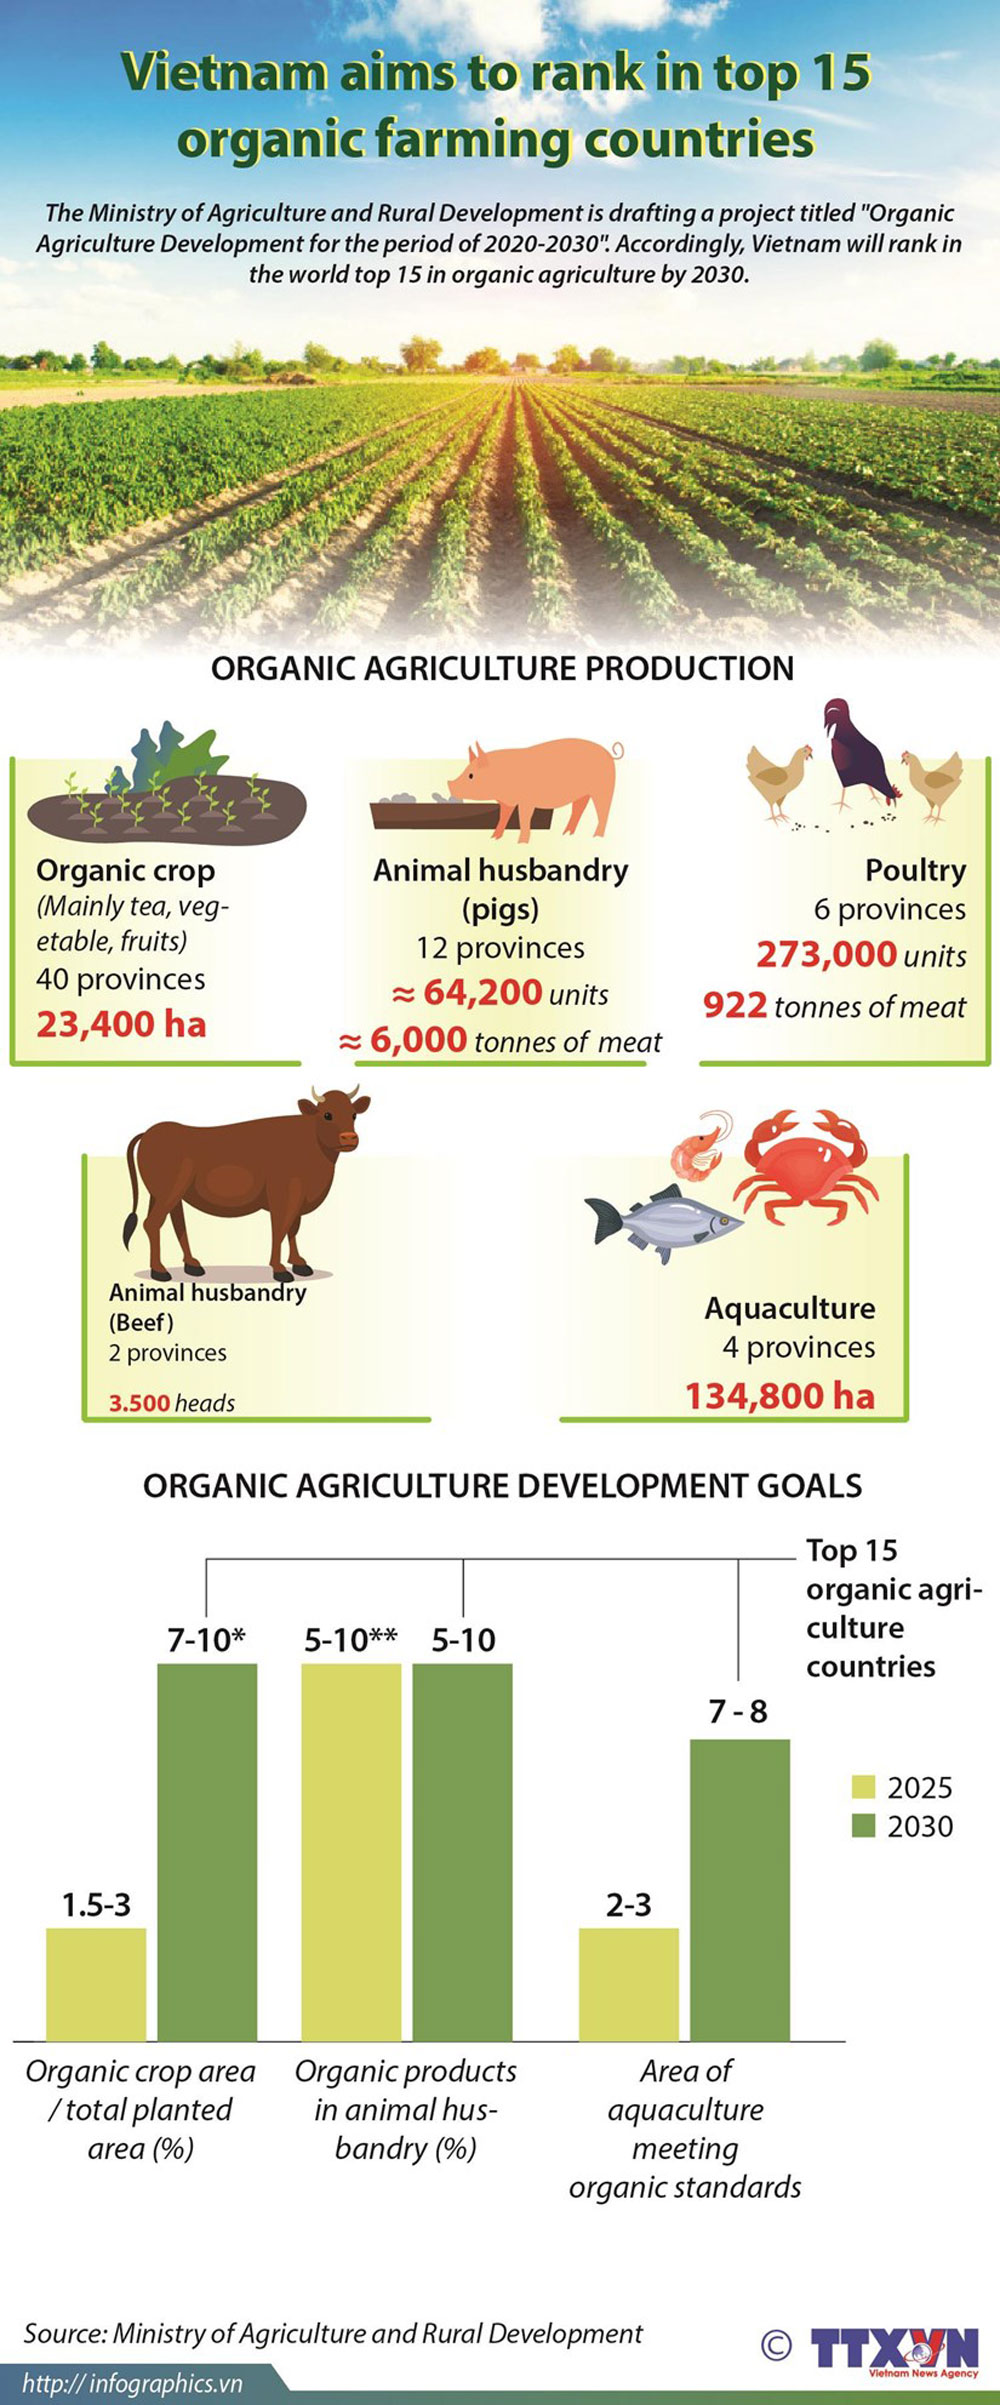 Vietnam, top 15 organic farming countries, Organic Agriculture Development, Ministry of Agriculture and Rural Development